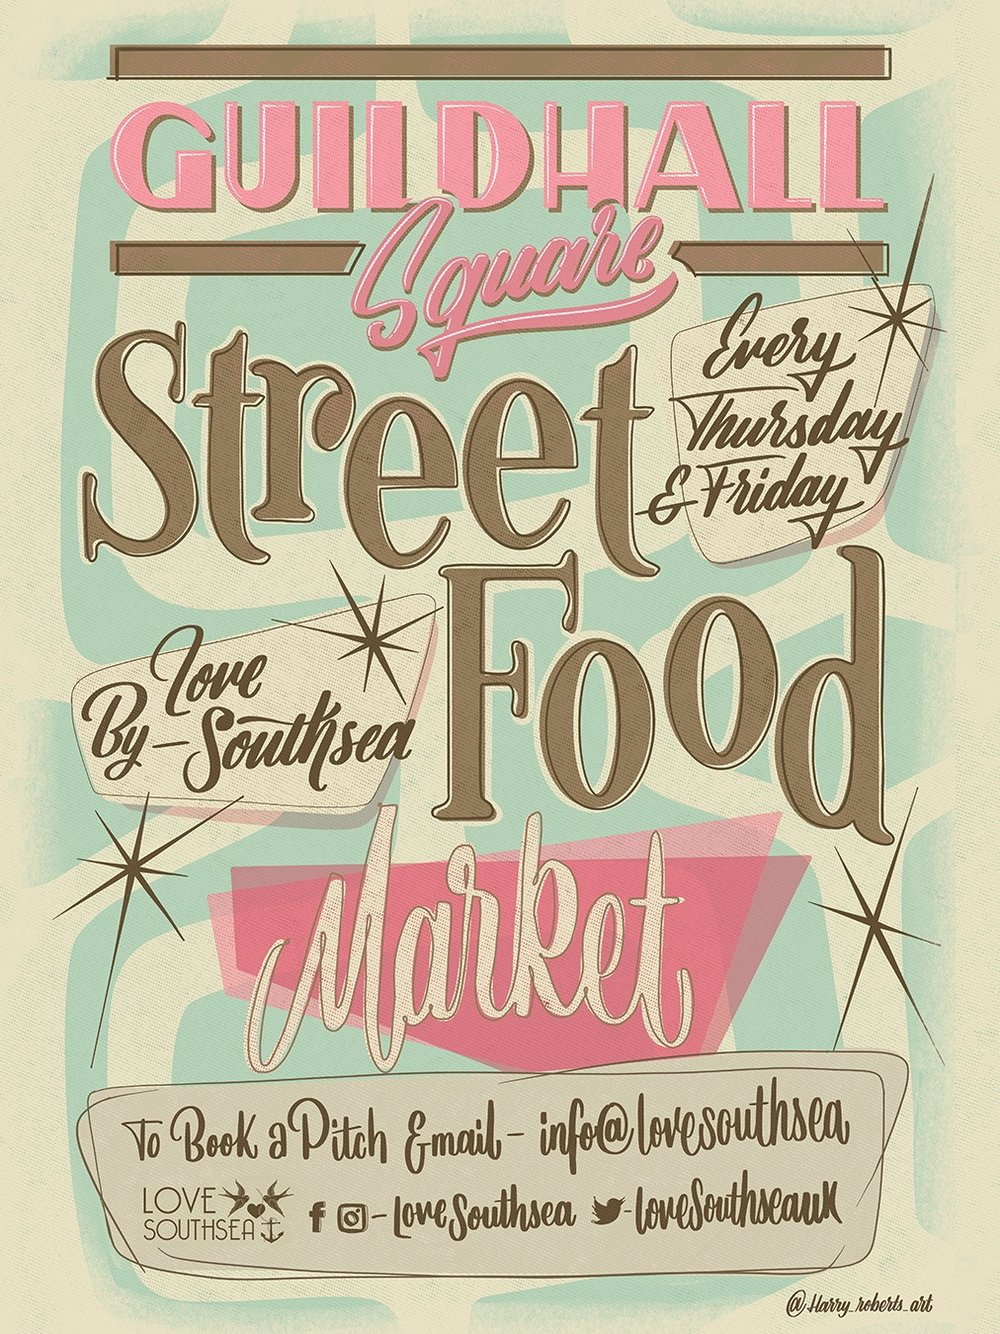 love southsea street food market guildhall square